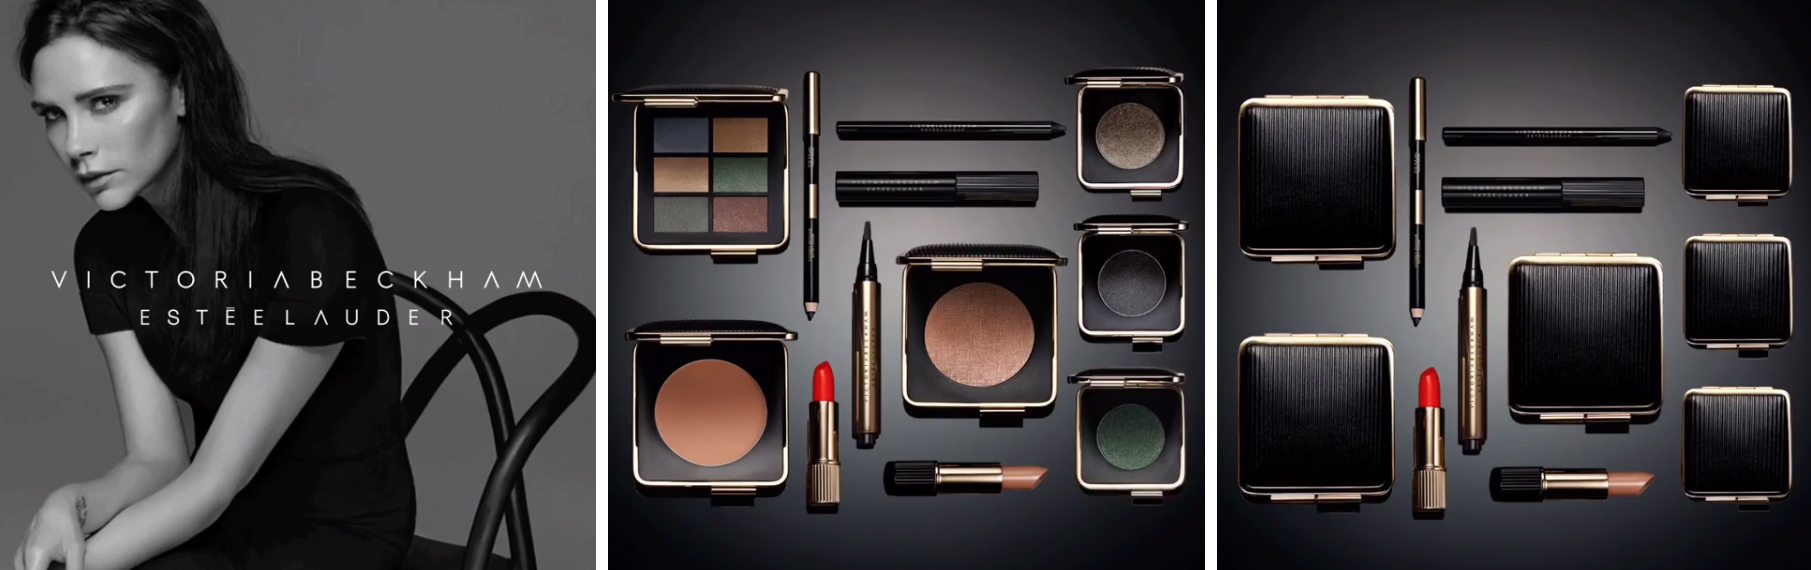 Victoria Beckham for Estee Lauder makeup collection